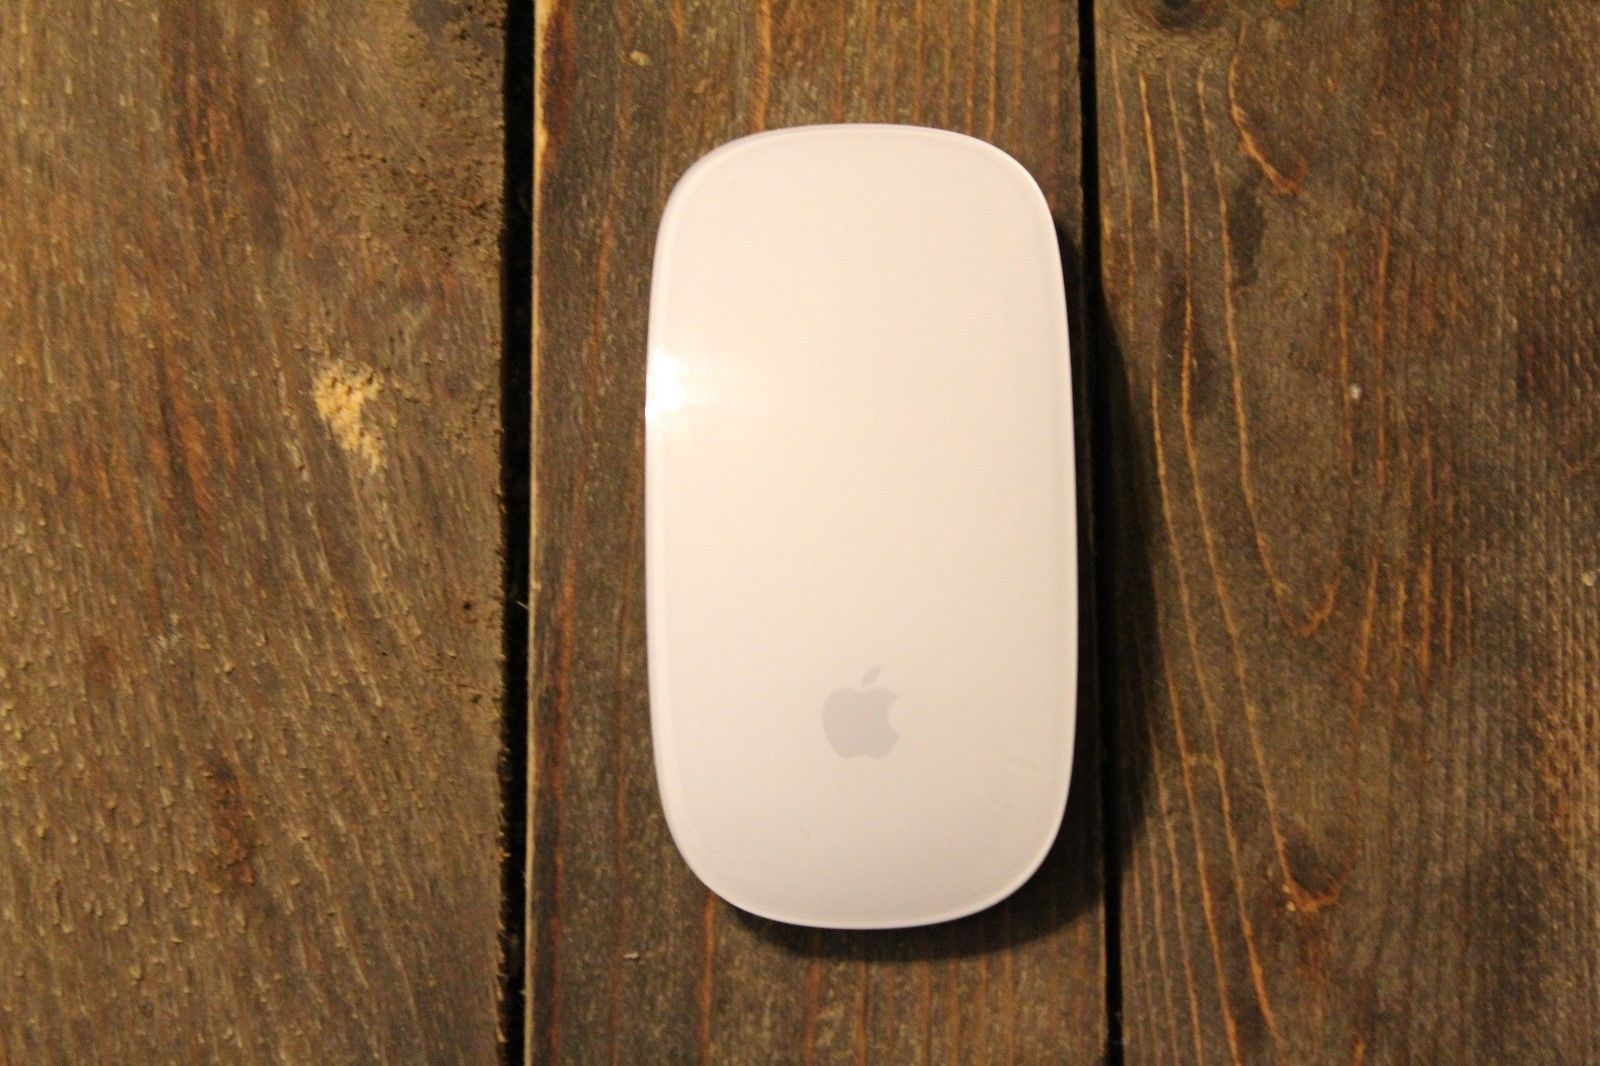 Genuine Apple Magic Mouse Bluetooth Multi-Touch A1296 MB829LL/A